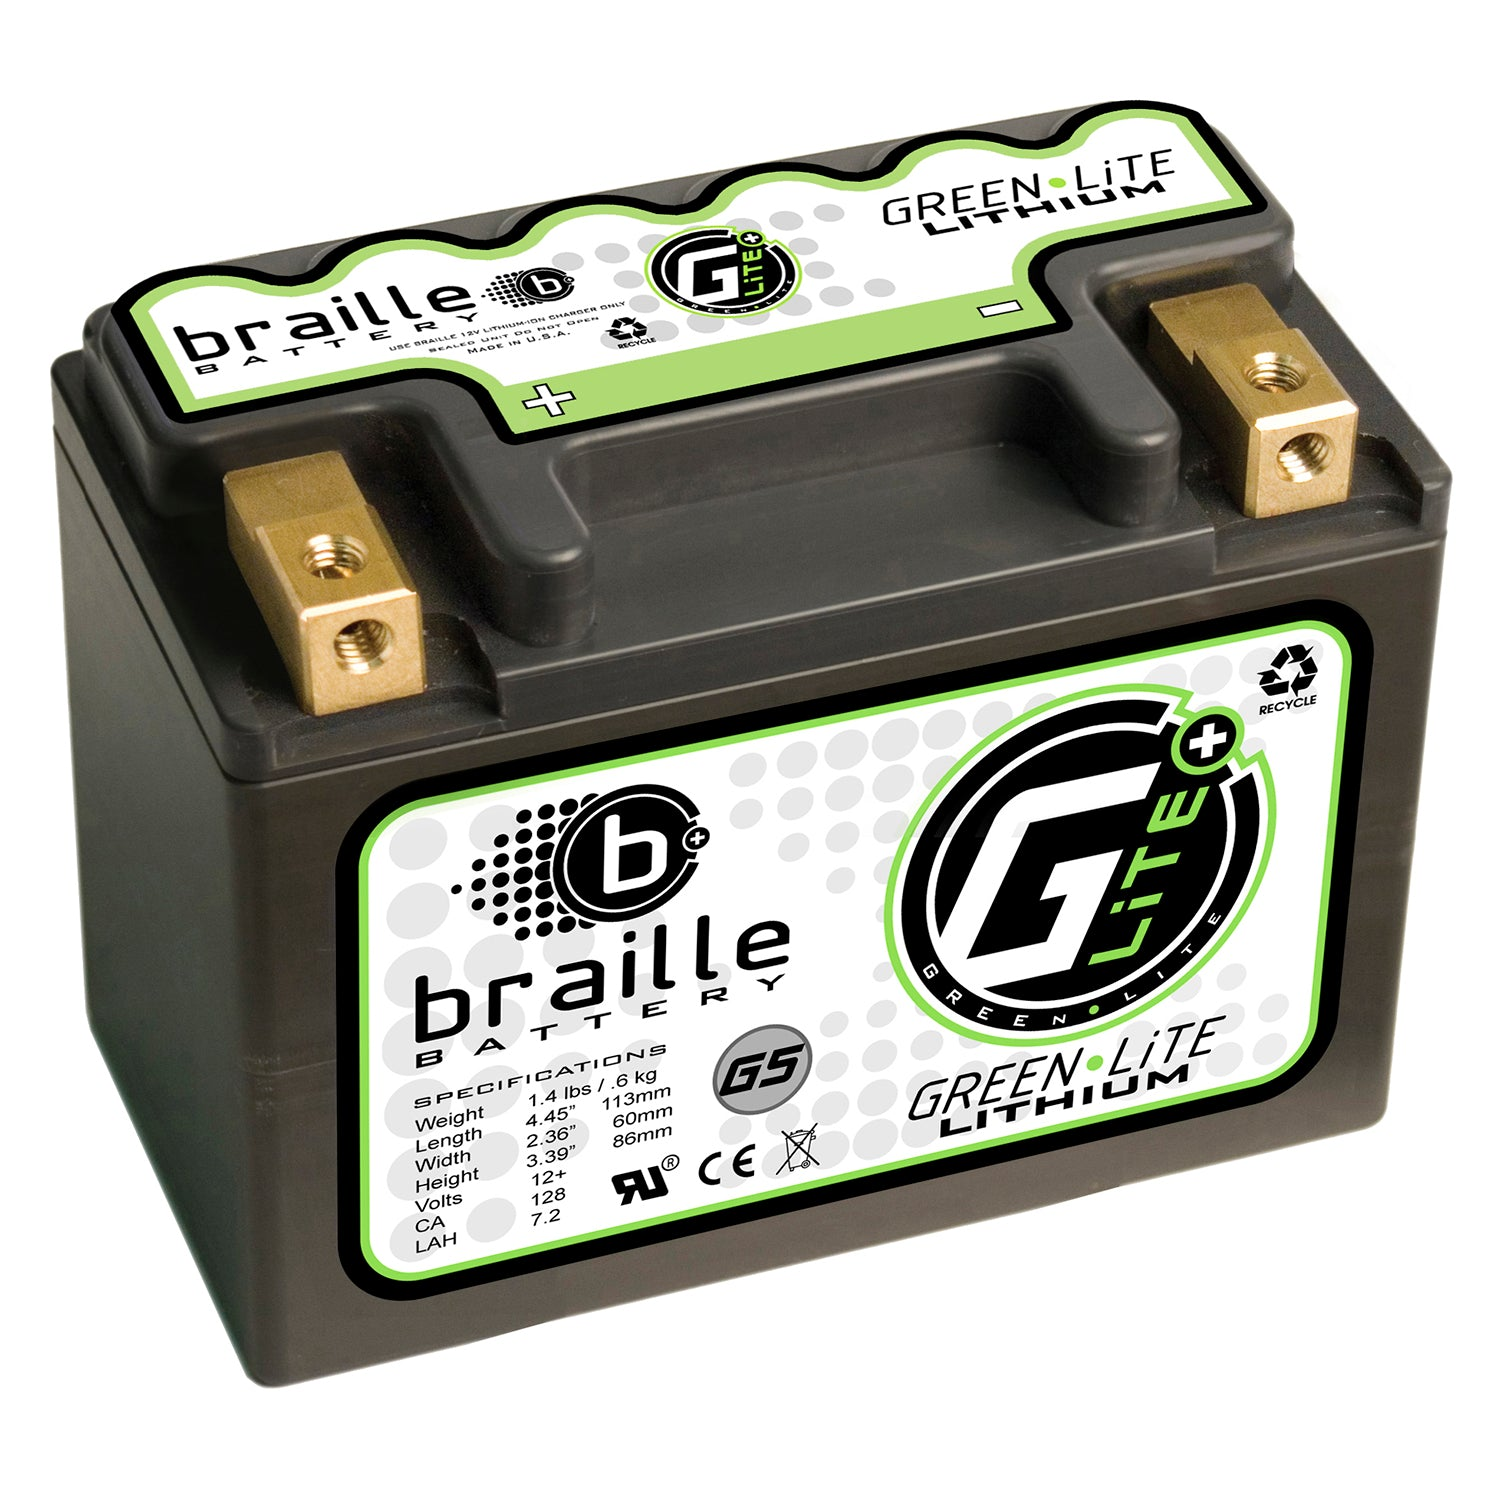 G5LS - GreenLite lithium battery